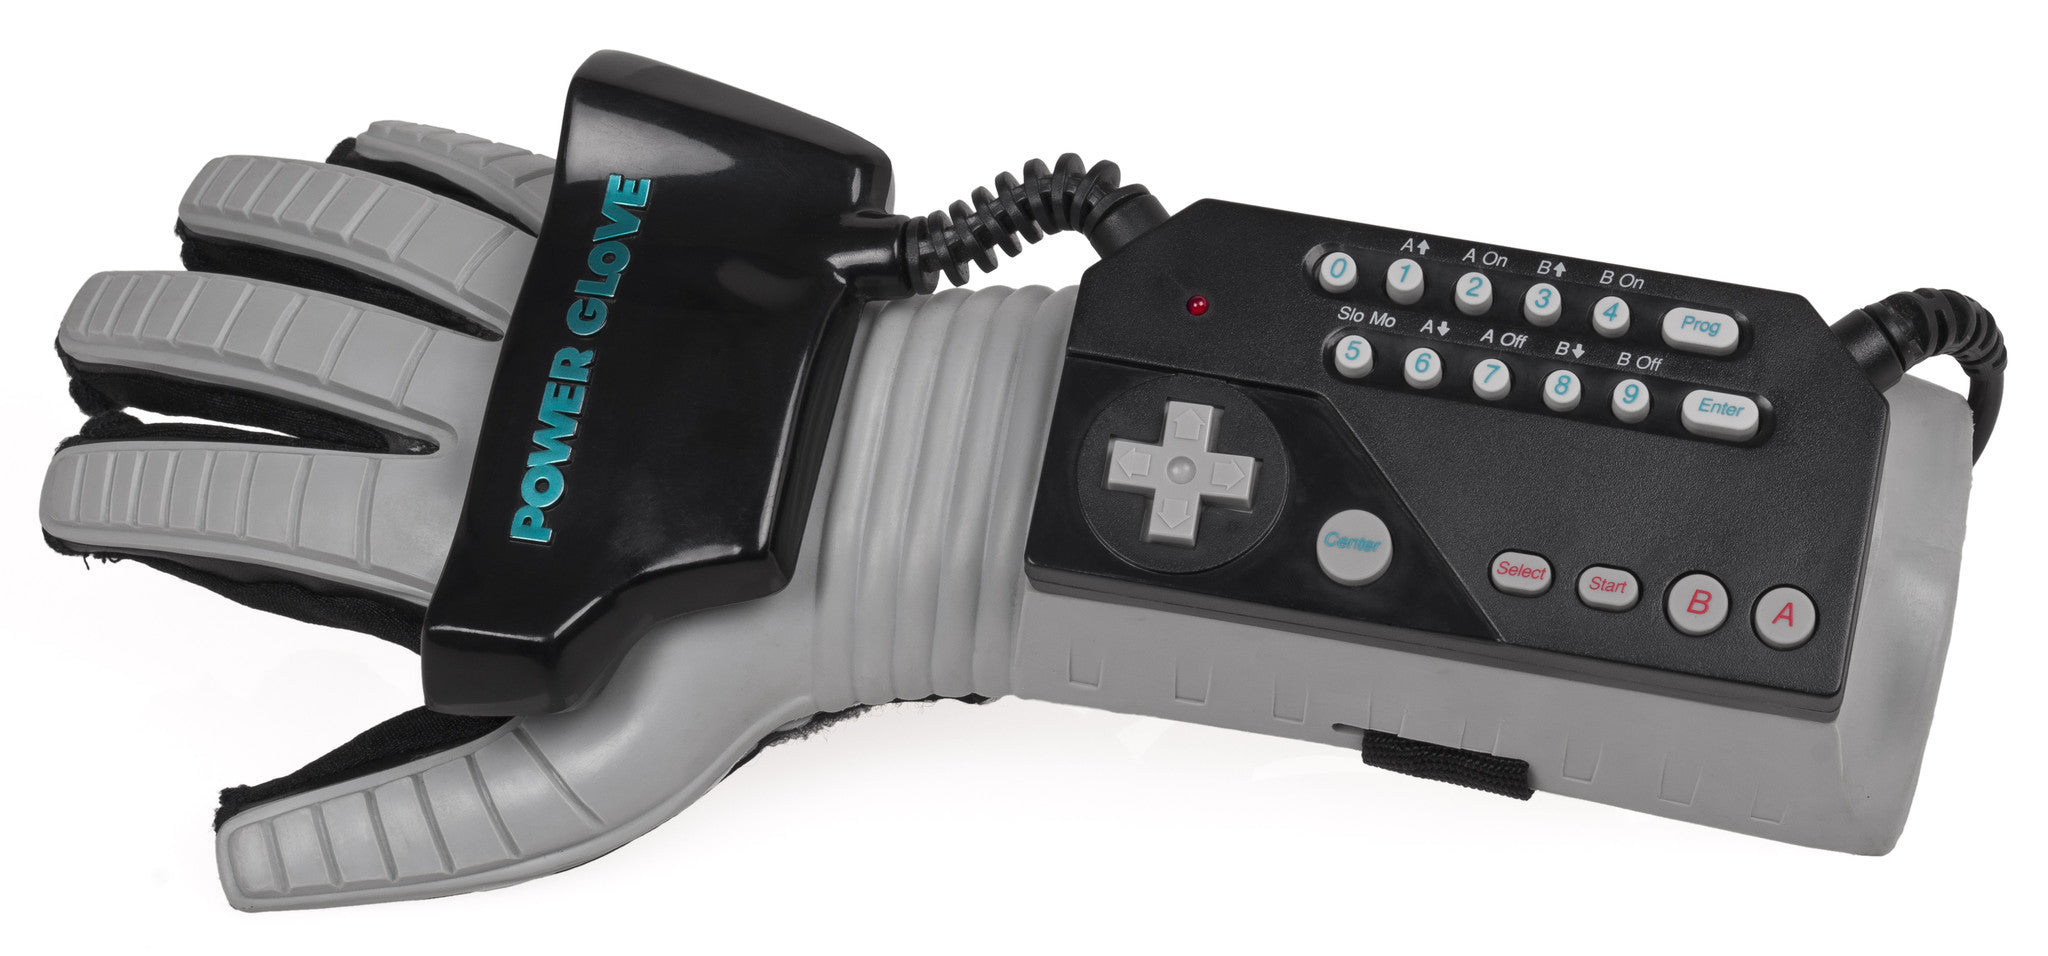 Nintendo - Mattel Power Glove Retropixl Retrogaming retro gaming Rare Console Collector Limited Edition Japan Import